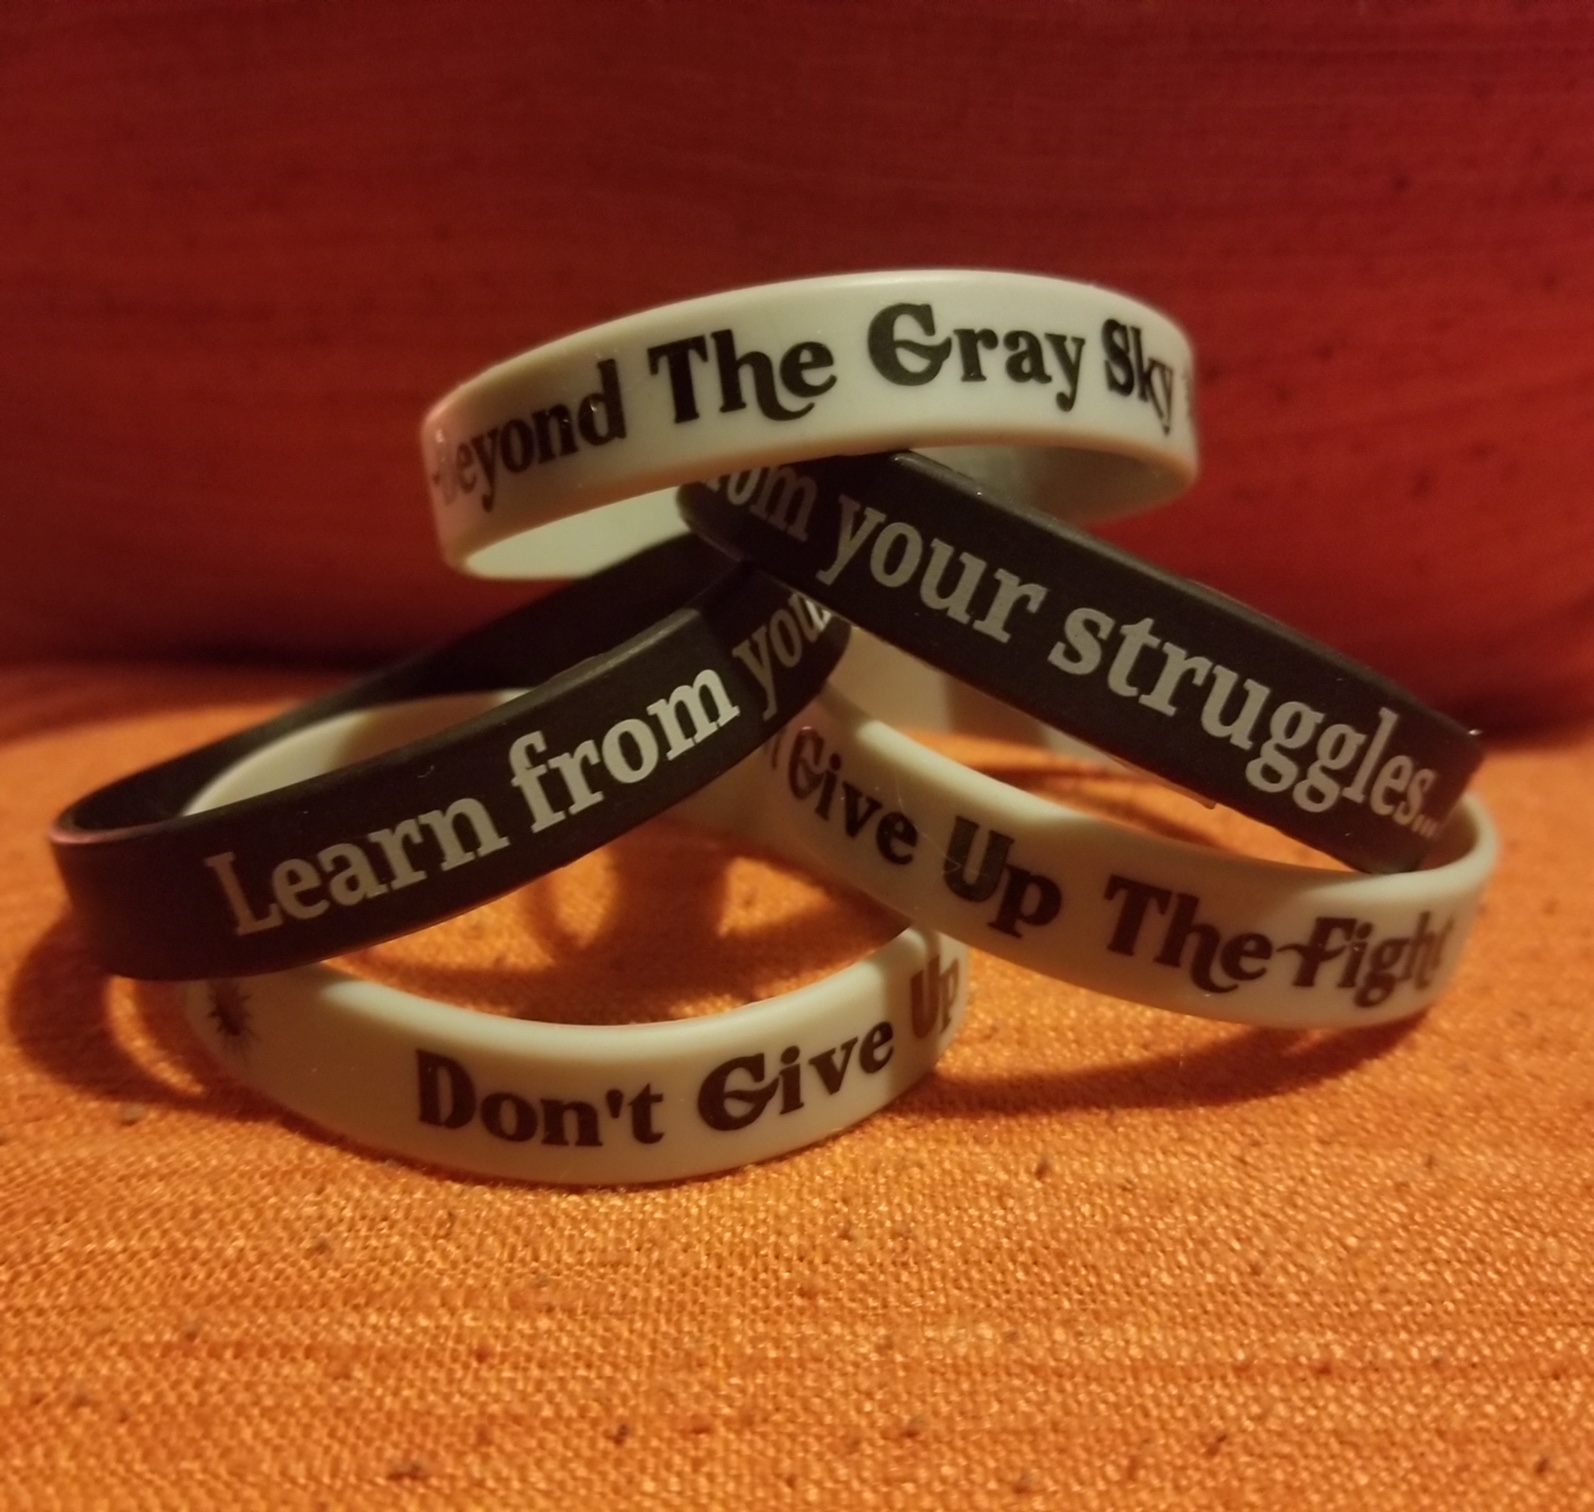 311 fan spotlights runt rant i created bracelets that i mail out to help remind people to not give up the fight and find their reason to live and fight the darkness hexwebz Choice Image